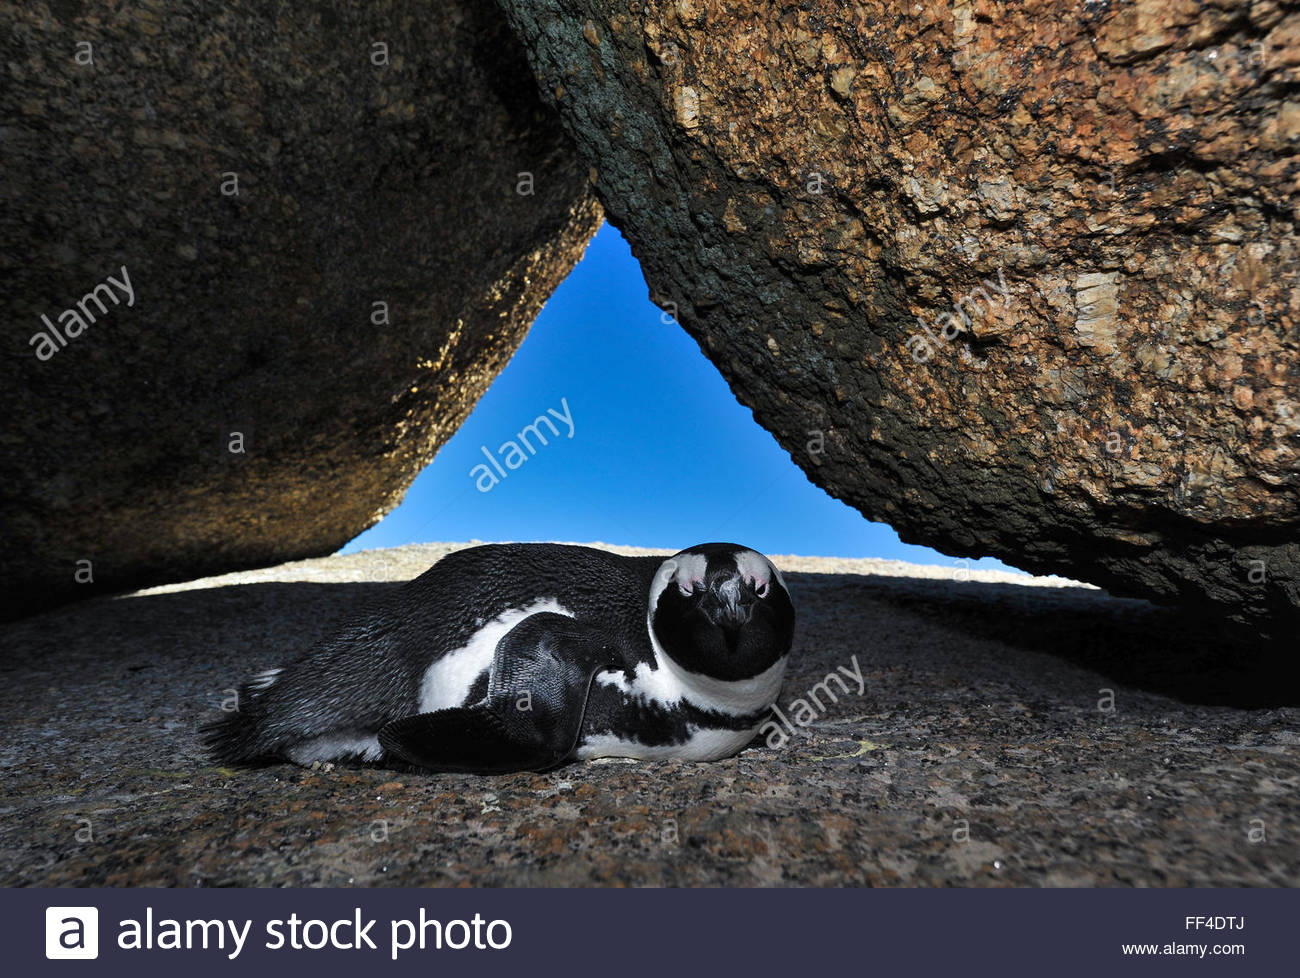 African penguin, Spheniscus Demersus, resting between the rocks, Boulders Beach, Western Cape, South Africa - Stock Image